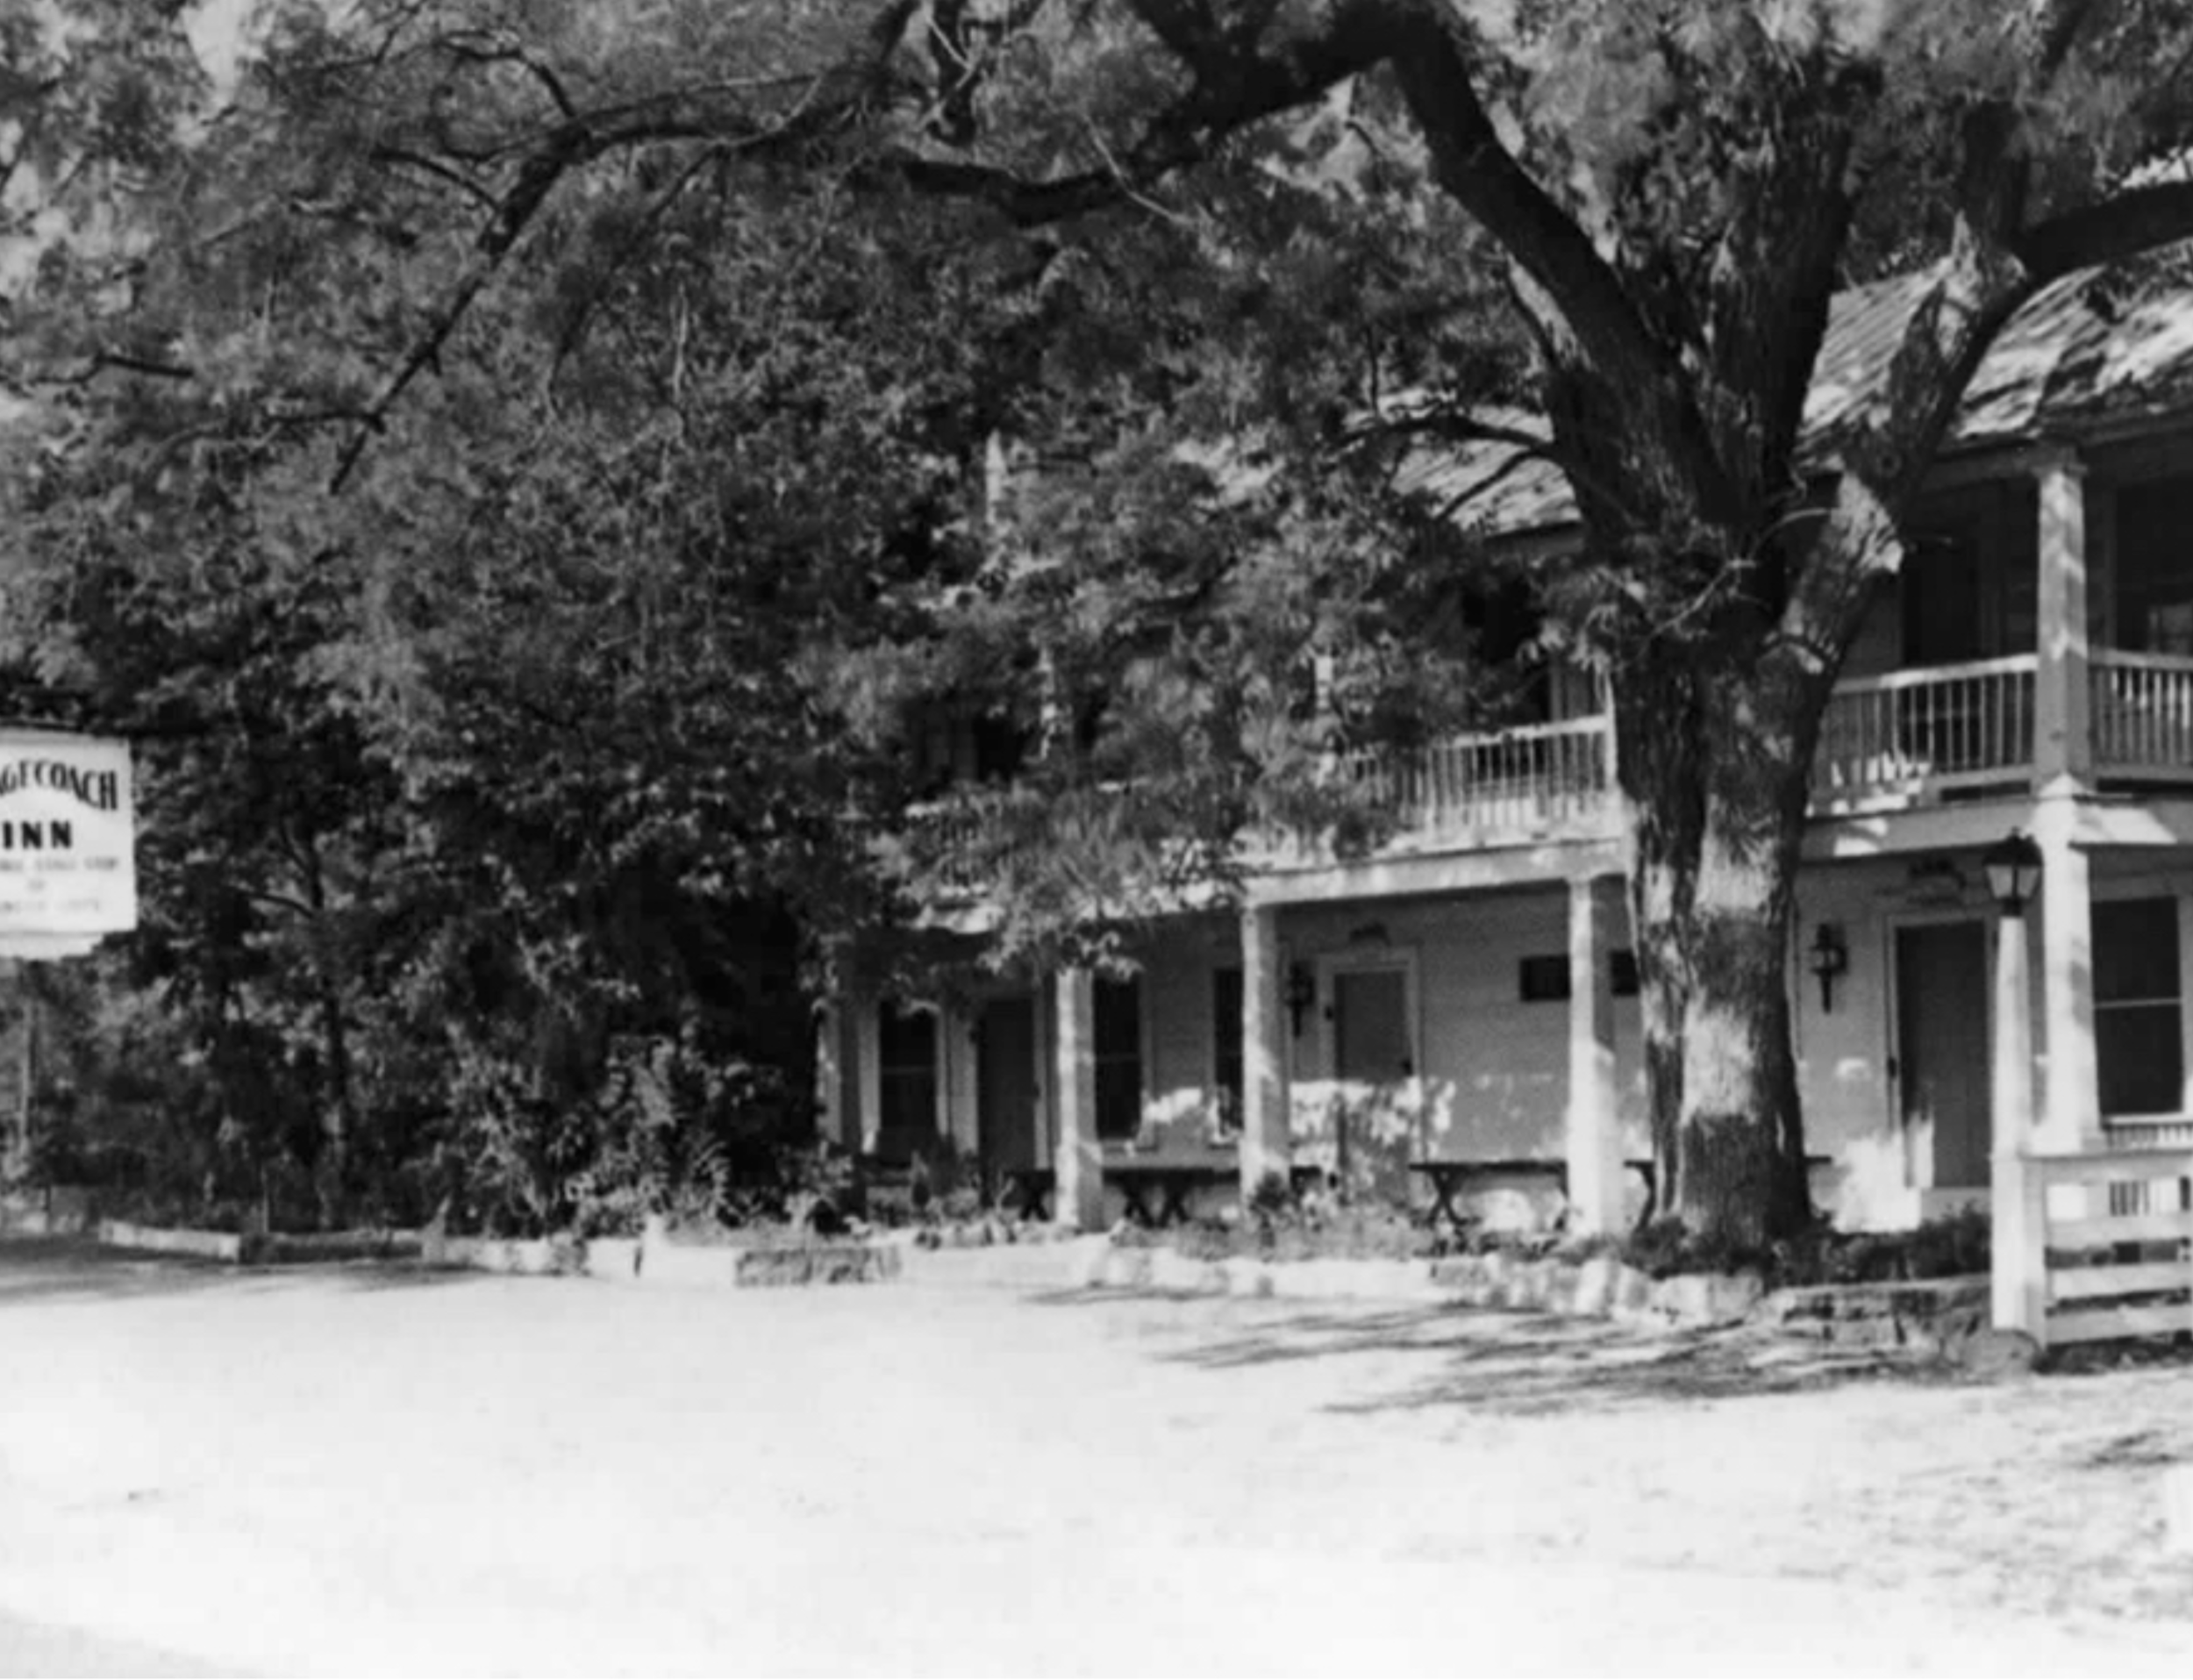 stagecoach_inn_history1.png